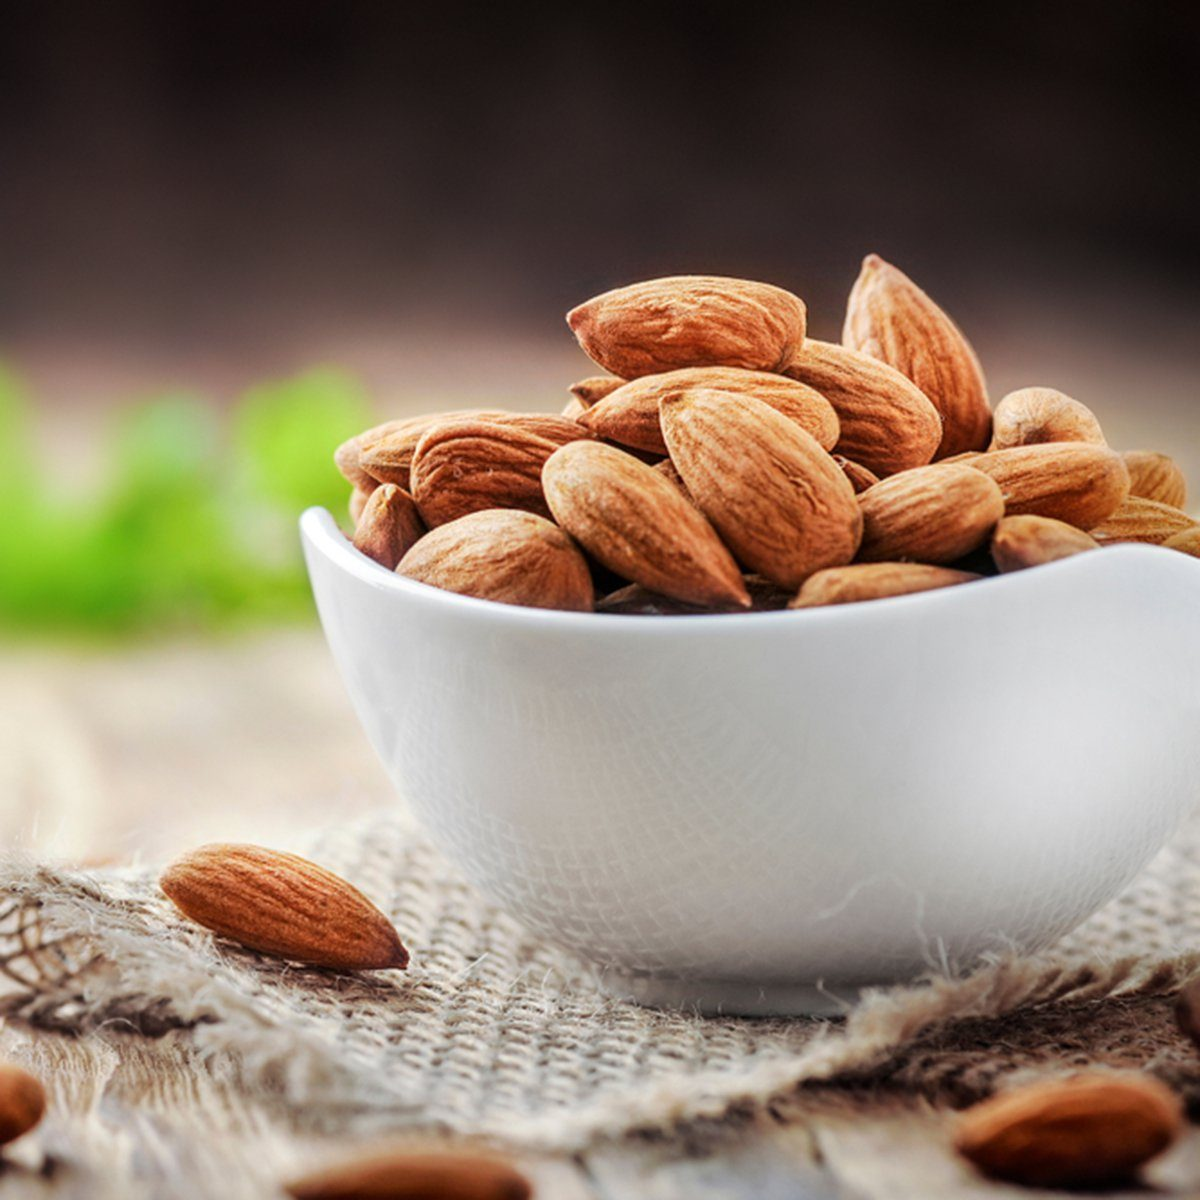 Almonds in white porcelain bowl on wooden table.